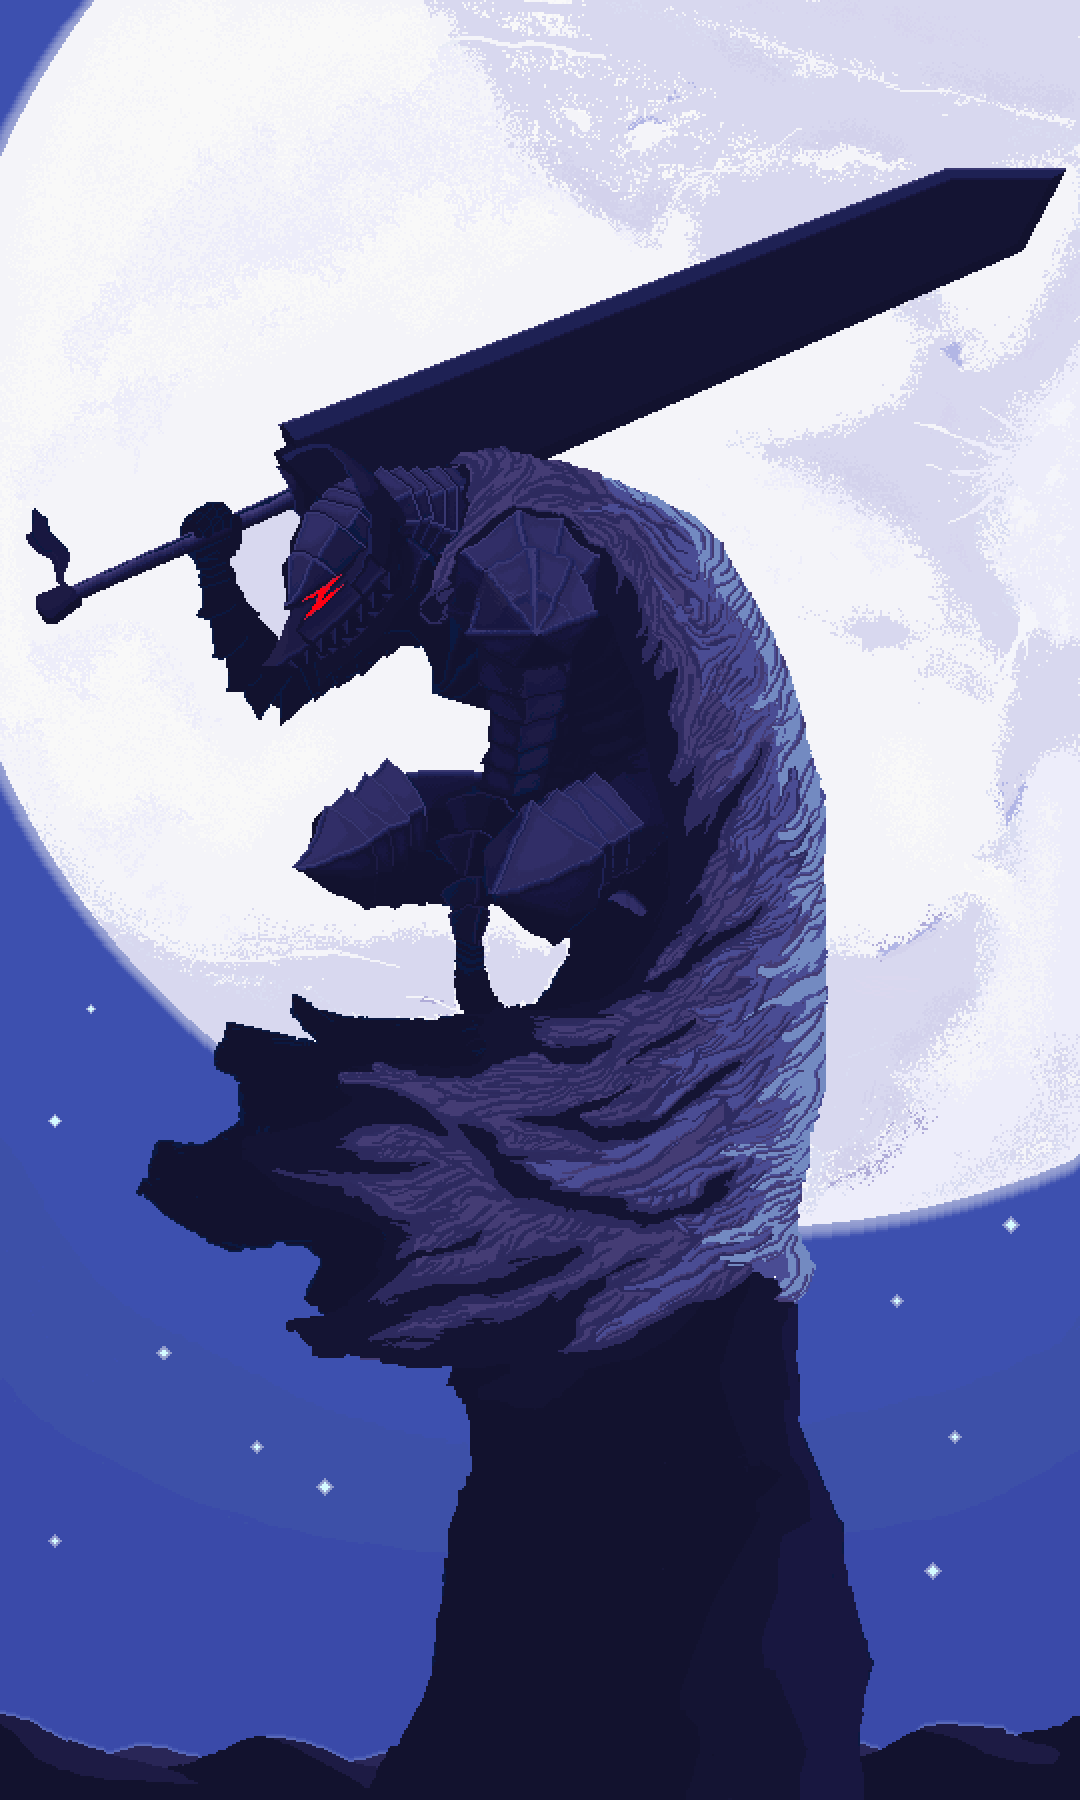 Anime 1080x1800 Berserk anime boys armor 2D 8-bit fantasy weapon fantasy armor berserk armor moonlight vertical Guts Black Swordsman pixel art fan art portrait display